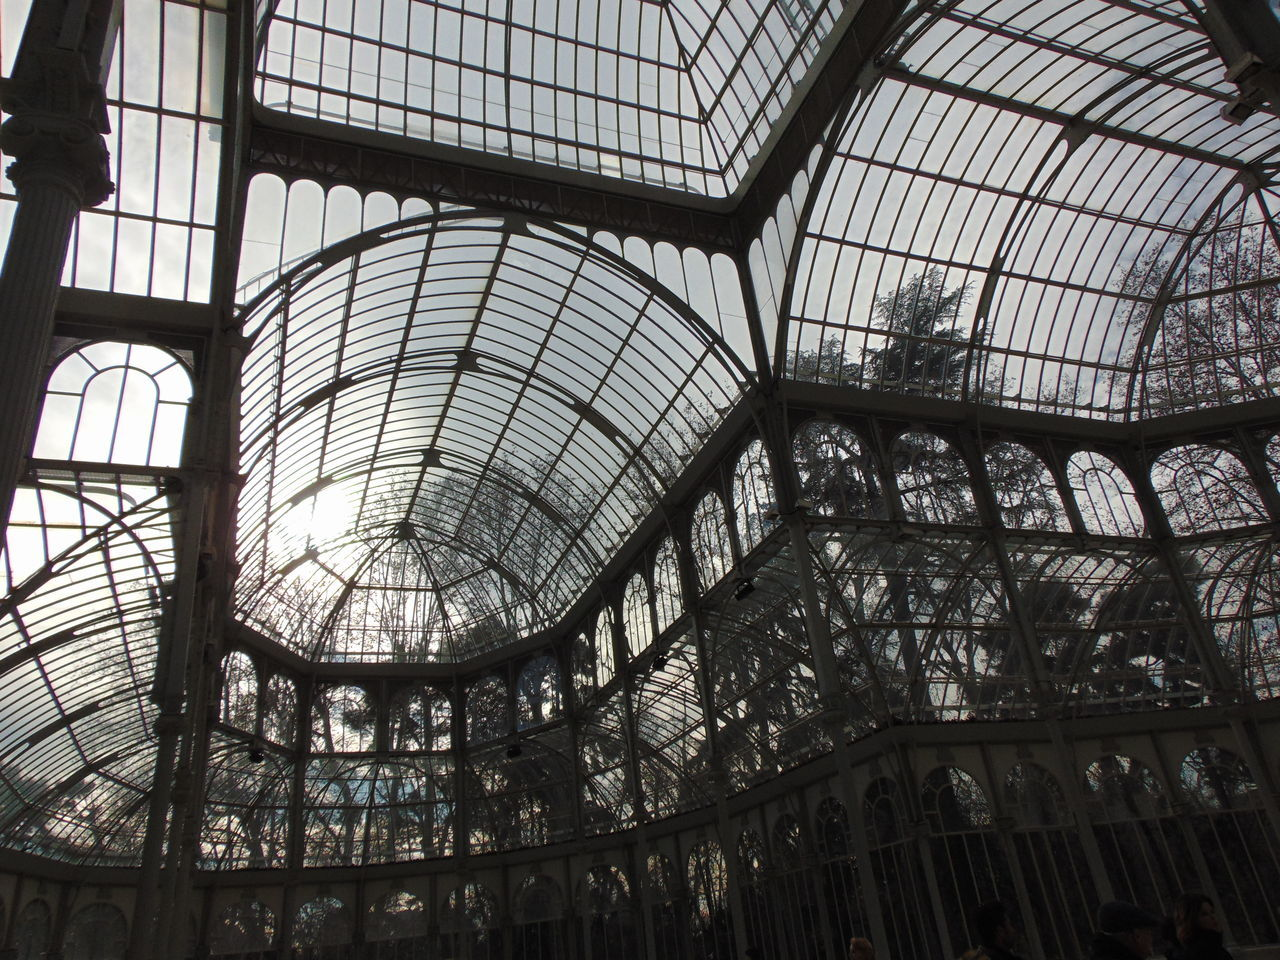 Pattern Indoors  No People Sky Day Architecture Greenhouse Built Structure Low Angle View Tree Reflection Tranquility Forest Nature Idyllic SPAIN Palace Palace Garden Palace Of Culture Palacio De Cristal Madrid Madrid Spain Madrid, Spain El Retiro Retiro Park